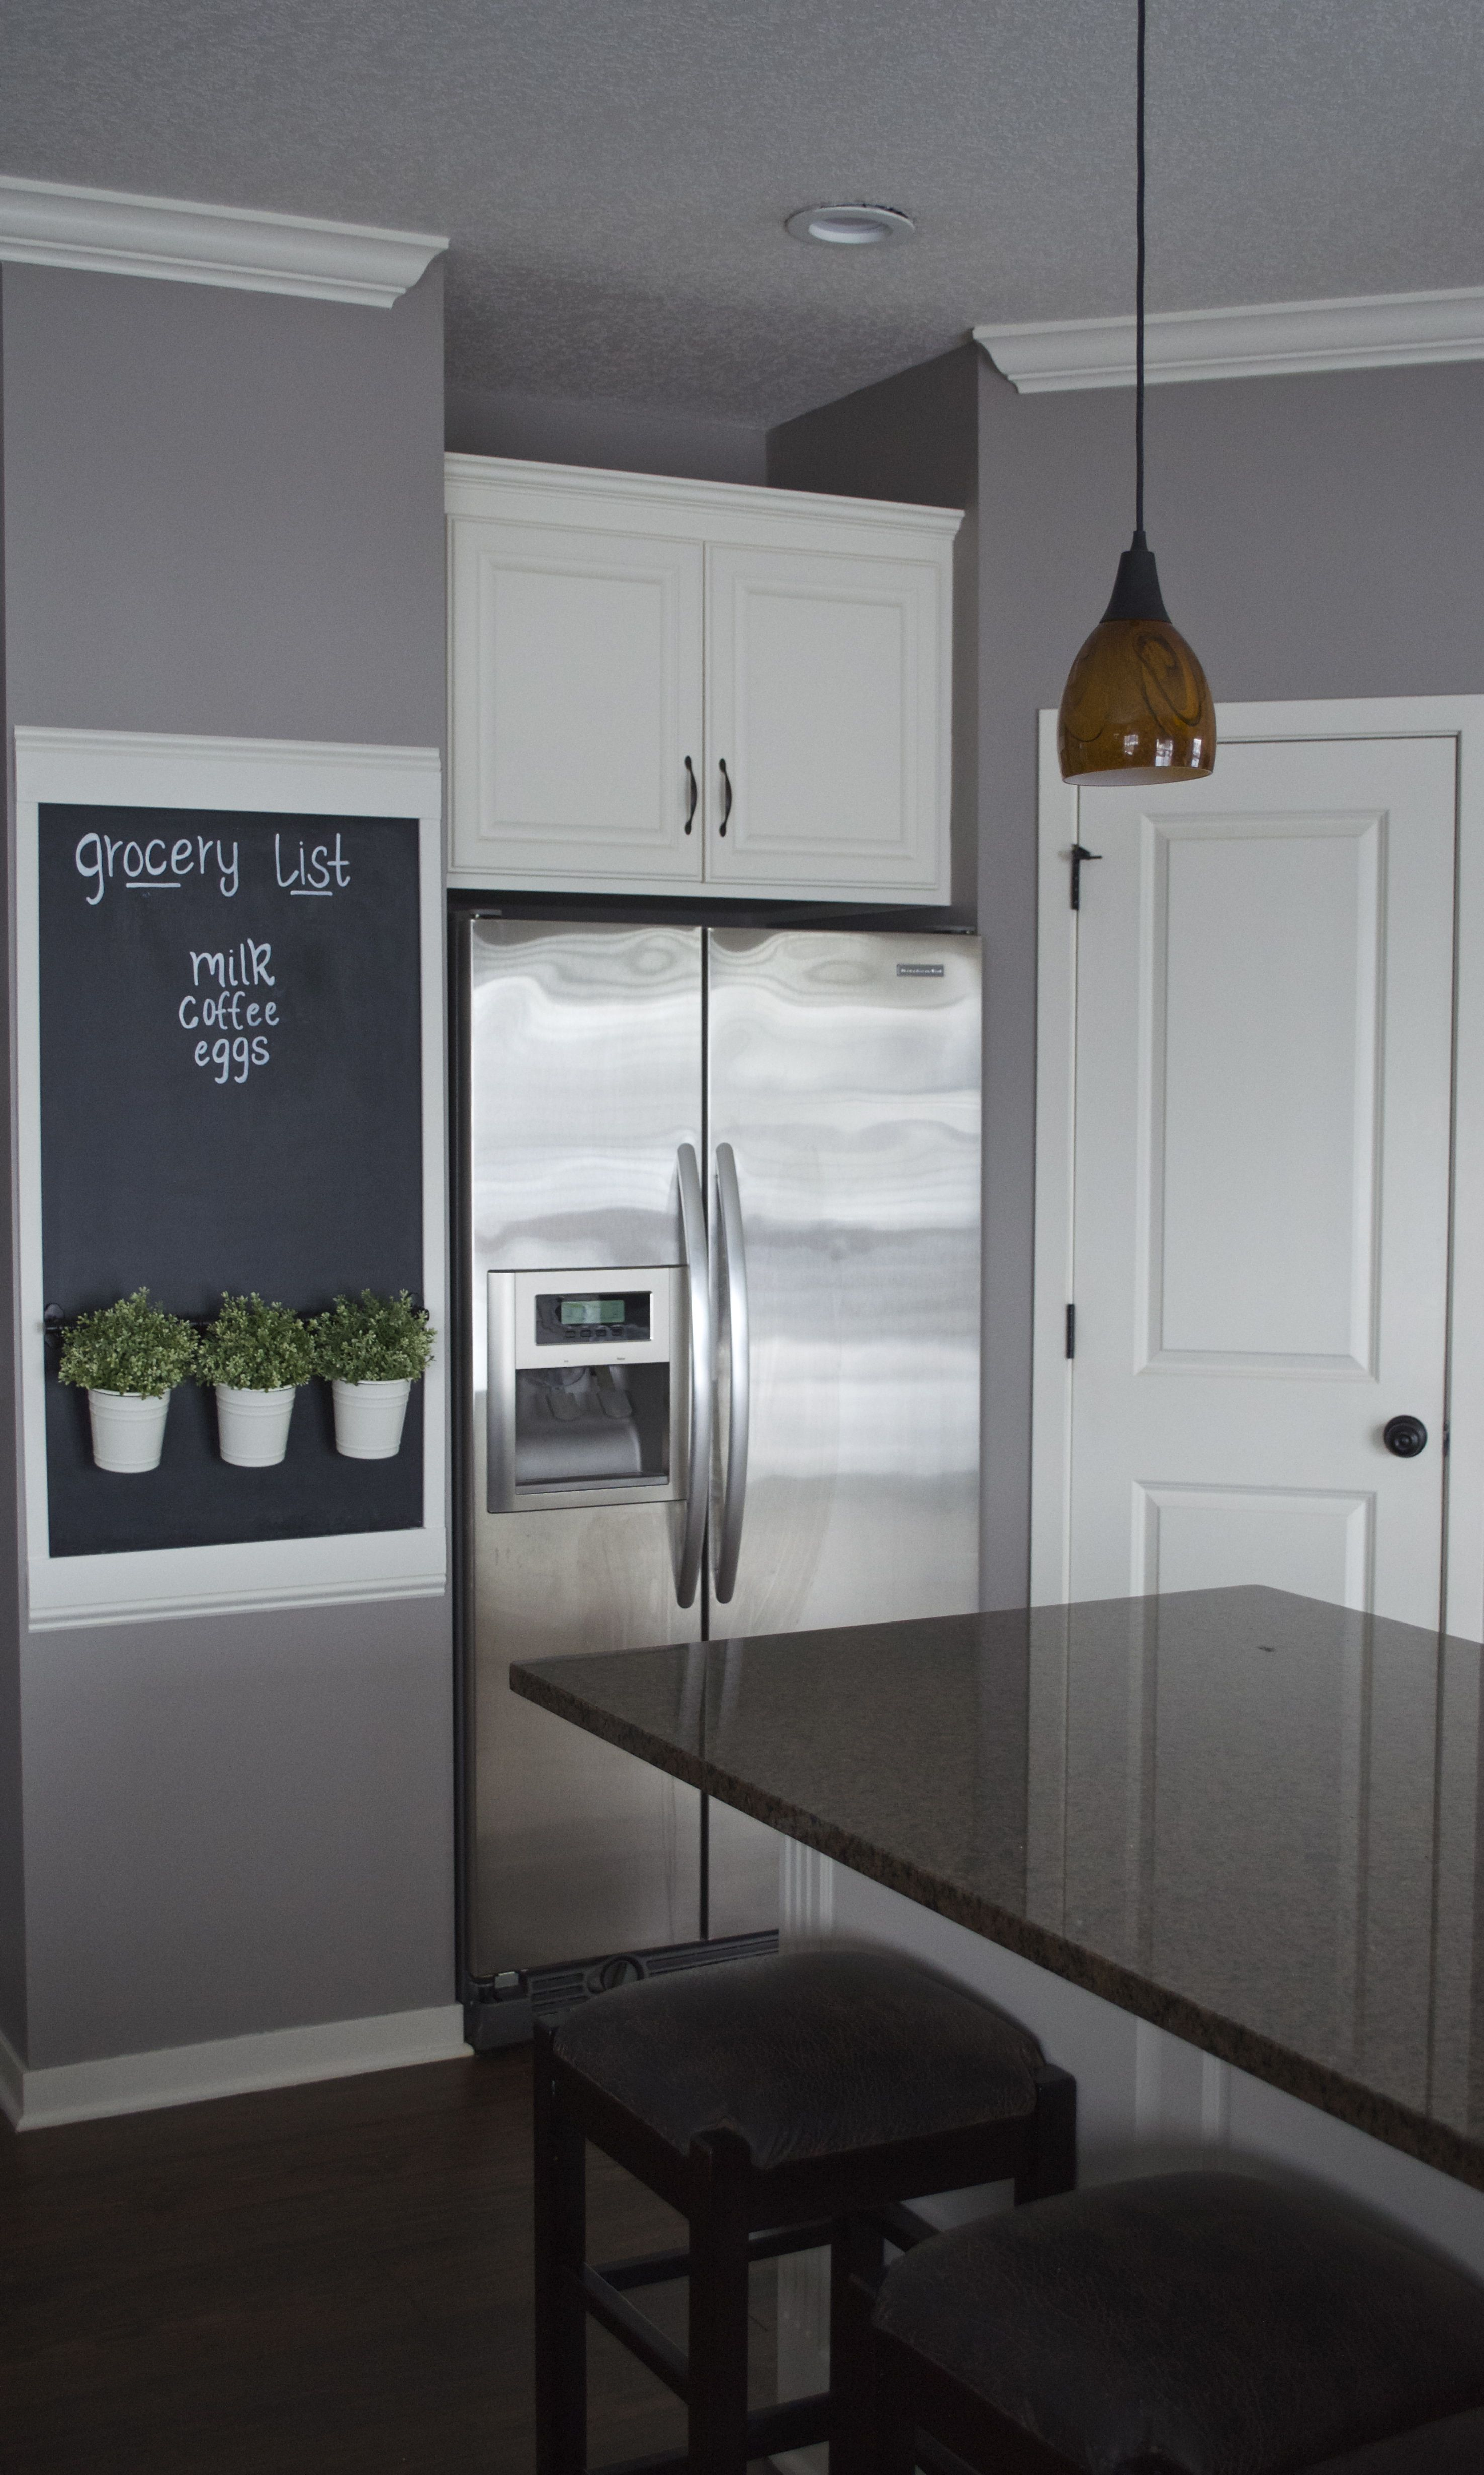 Kitchen Chalkboard Wall Chalkboard Wall Kitchen Kitchen Chalkboard Diy Home Decor Projects